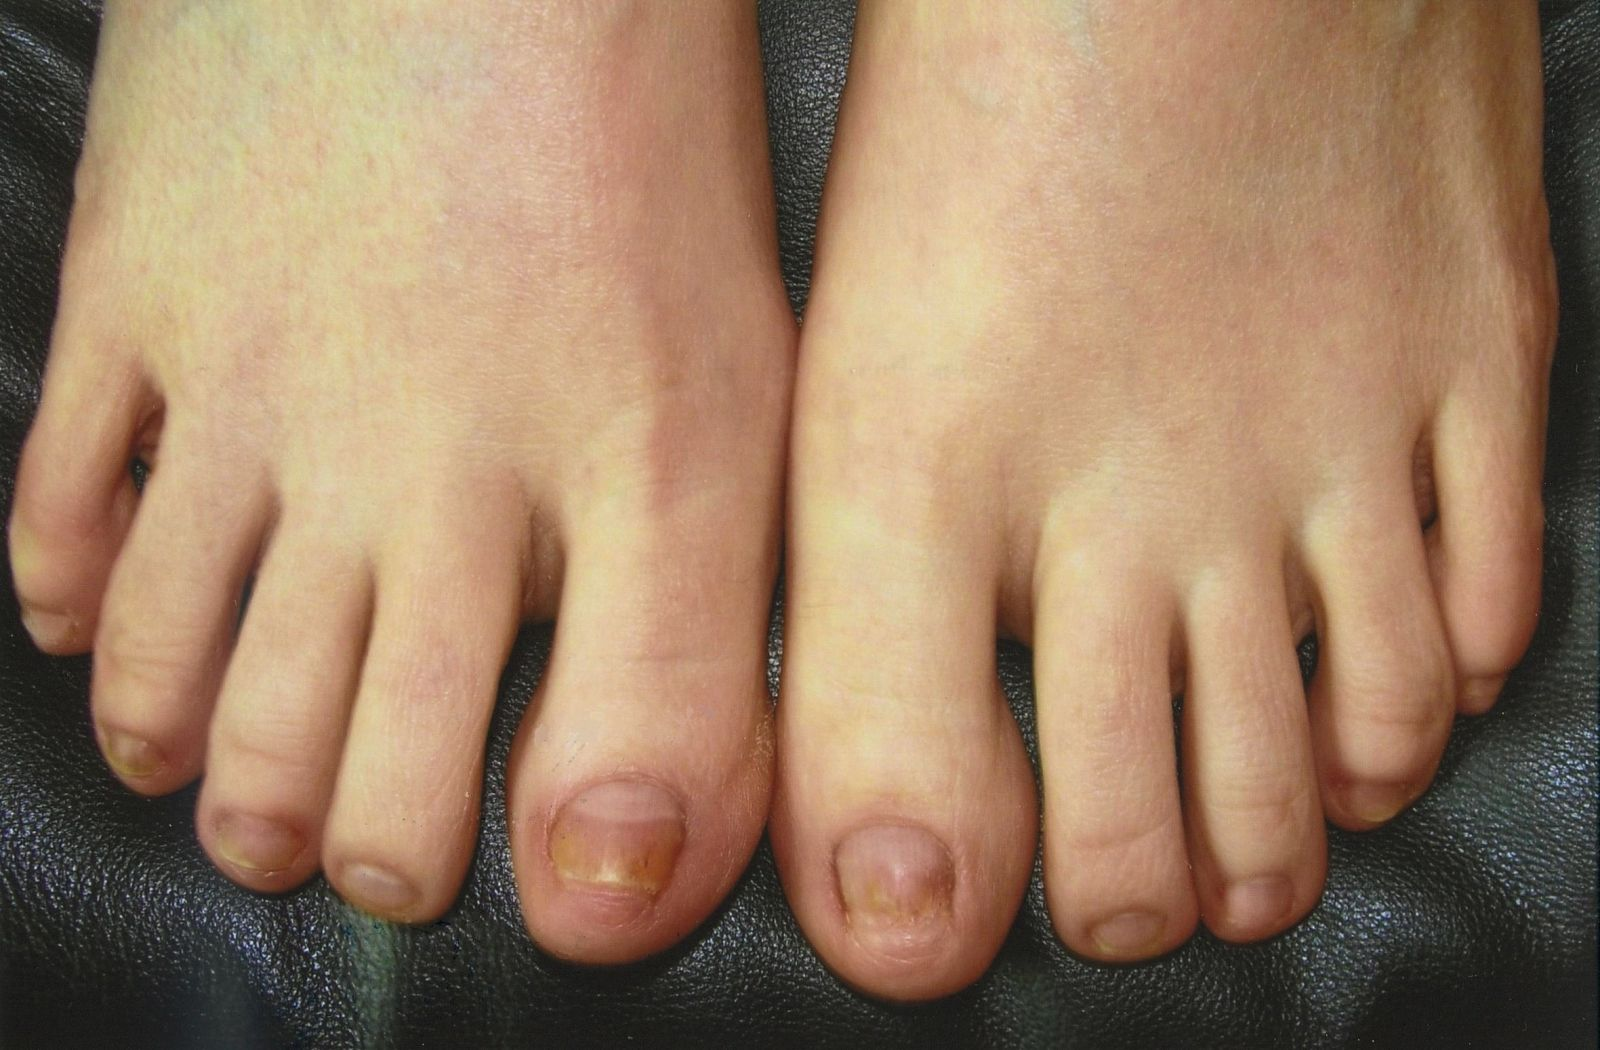 Three months after the laser treatment for toenail fungus